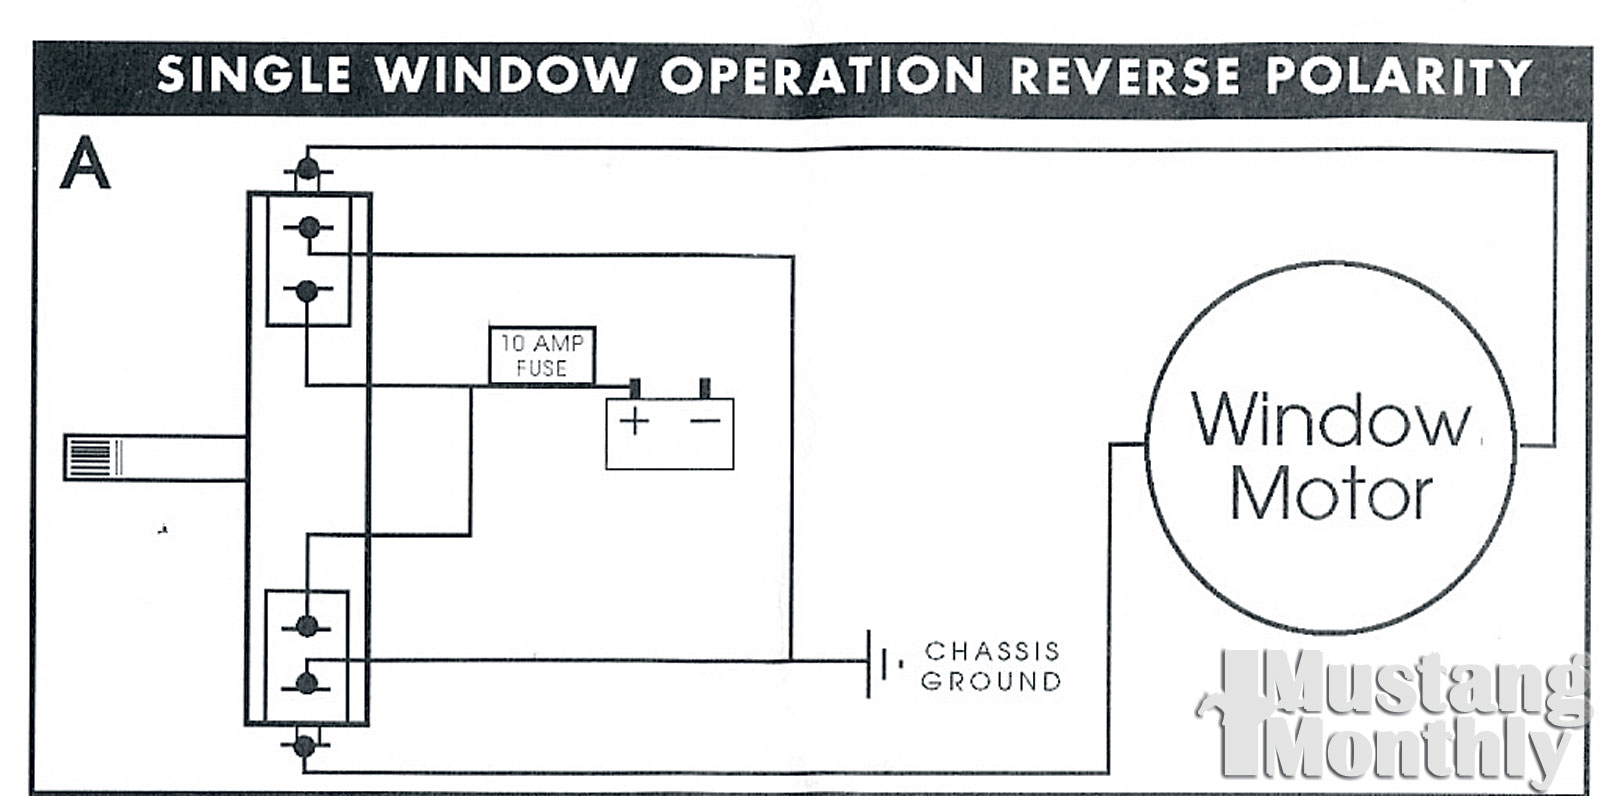 Mump 1107 20+electric Life Power Windows+single Window Wiring Diagram -  Photo 33848284 - Electric Life Power Window Conversion - Install Power  Windows - Project ReclaimMustang 360